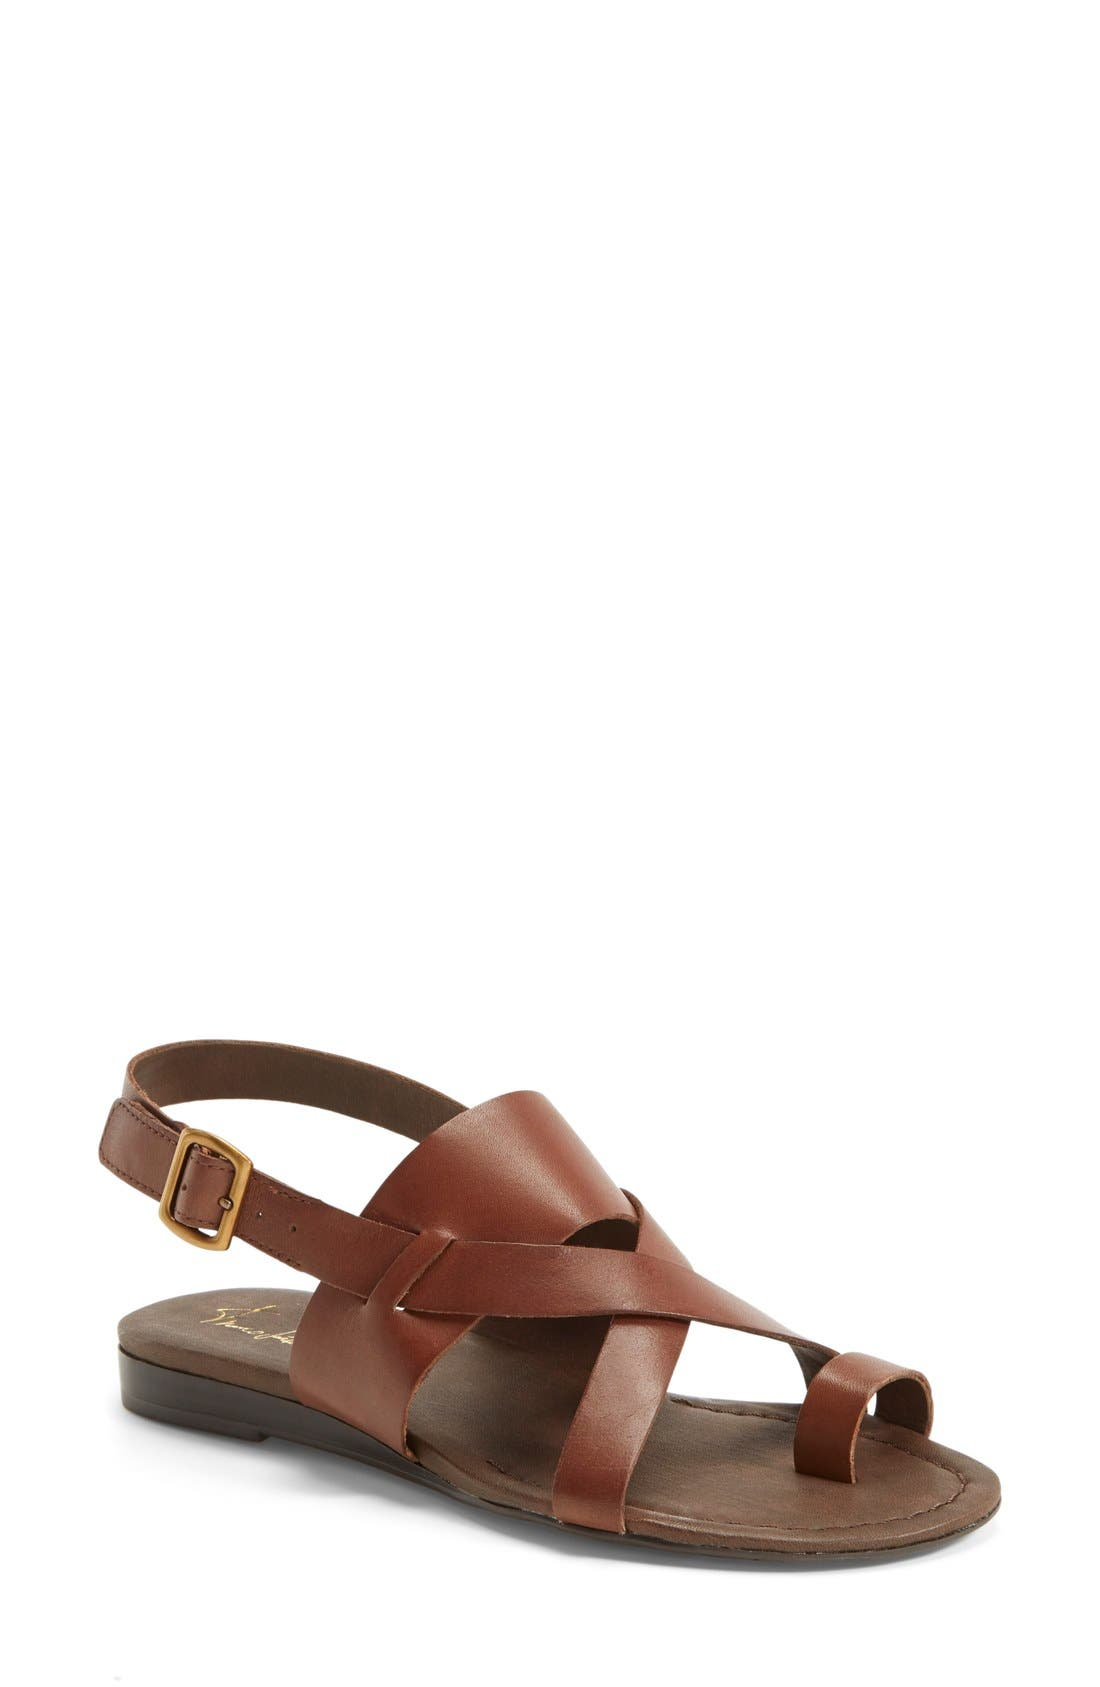 Gia Sandal,                             Main thumbnail 1, color,                             Chocolate Antanado